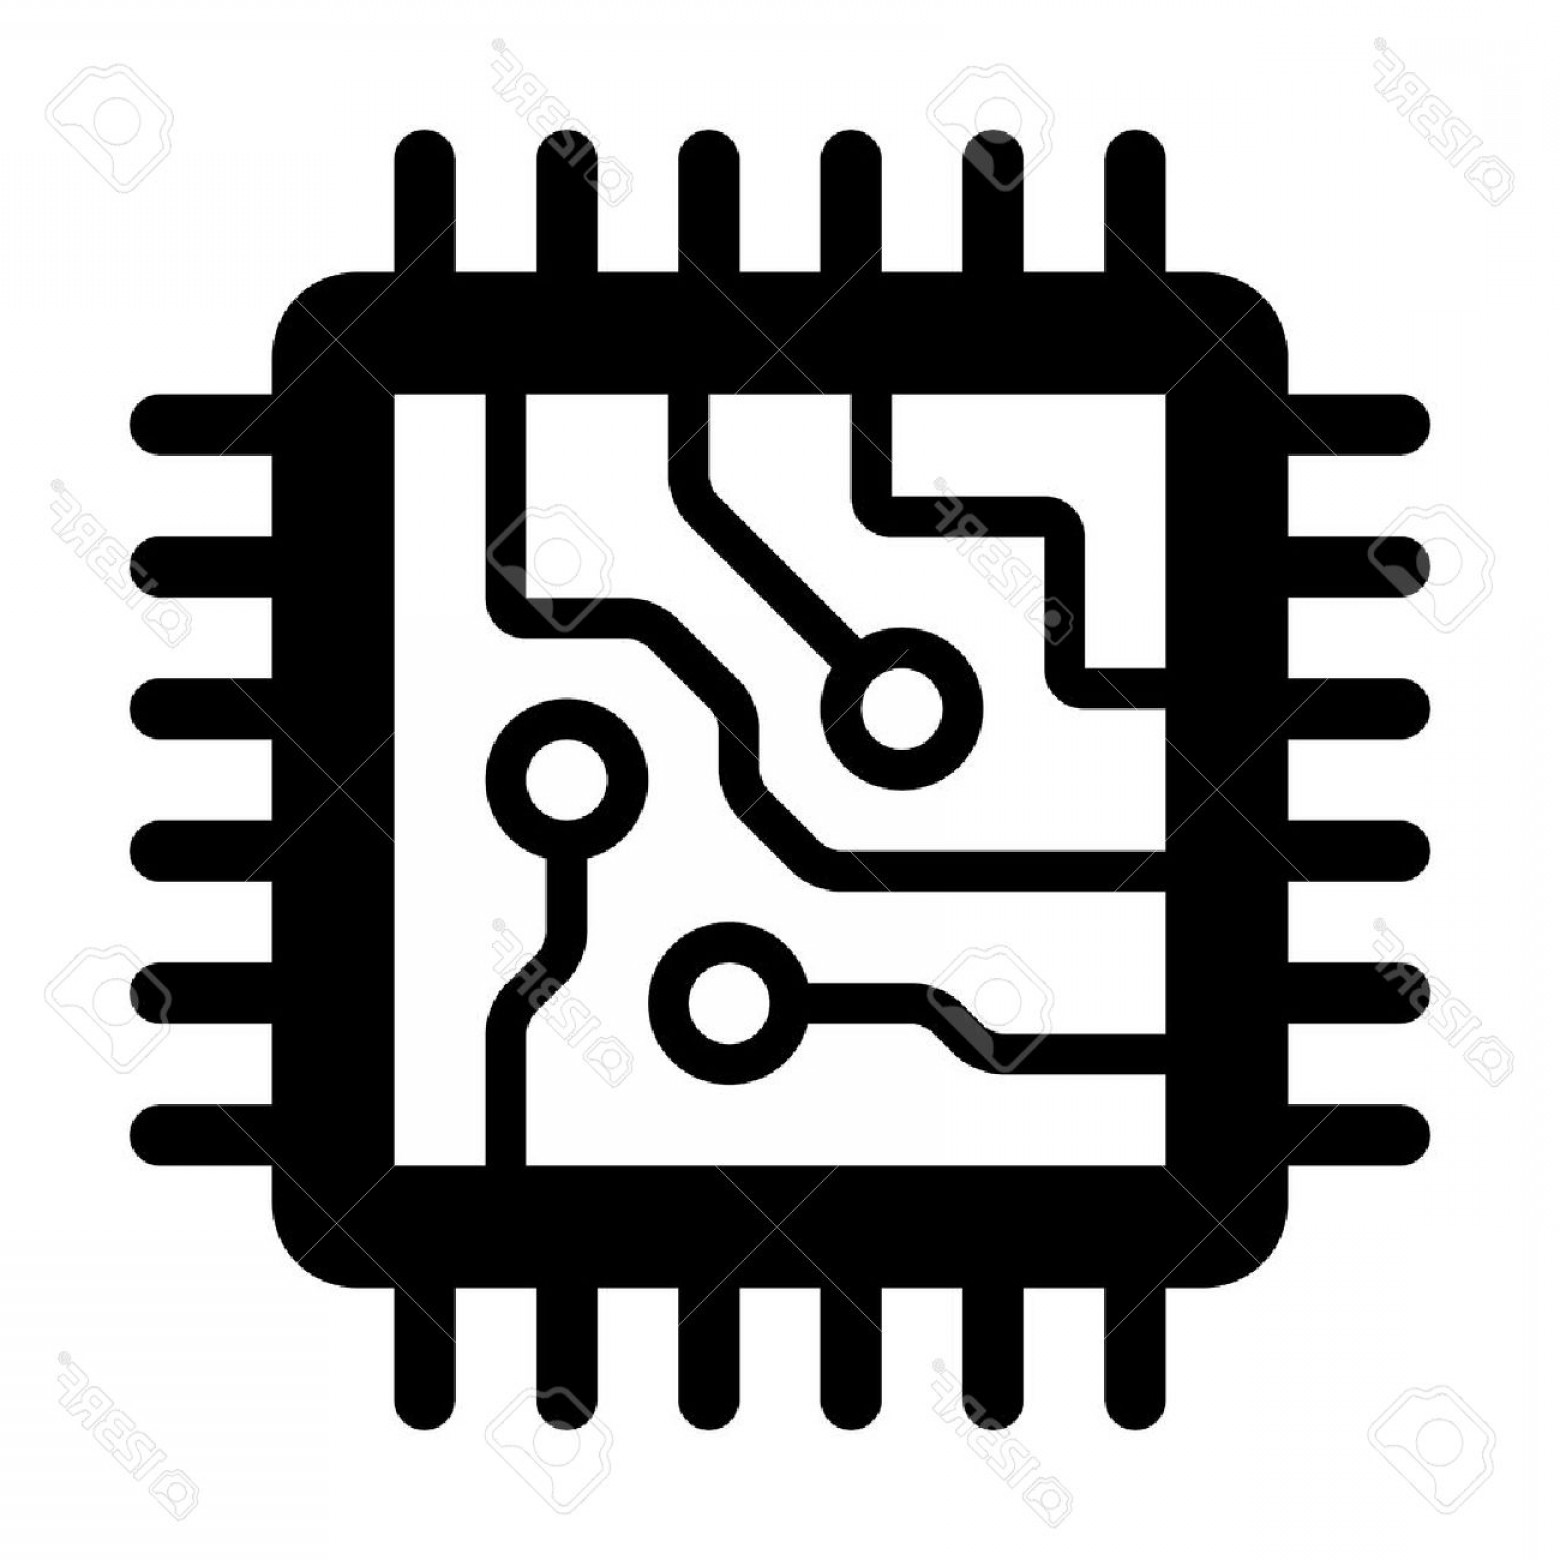 Photostock Vector Computer Chip Circuit Board Flat Icon For Apps And.